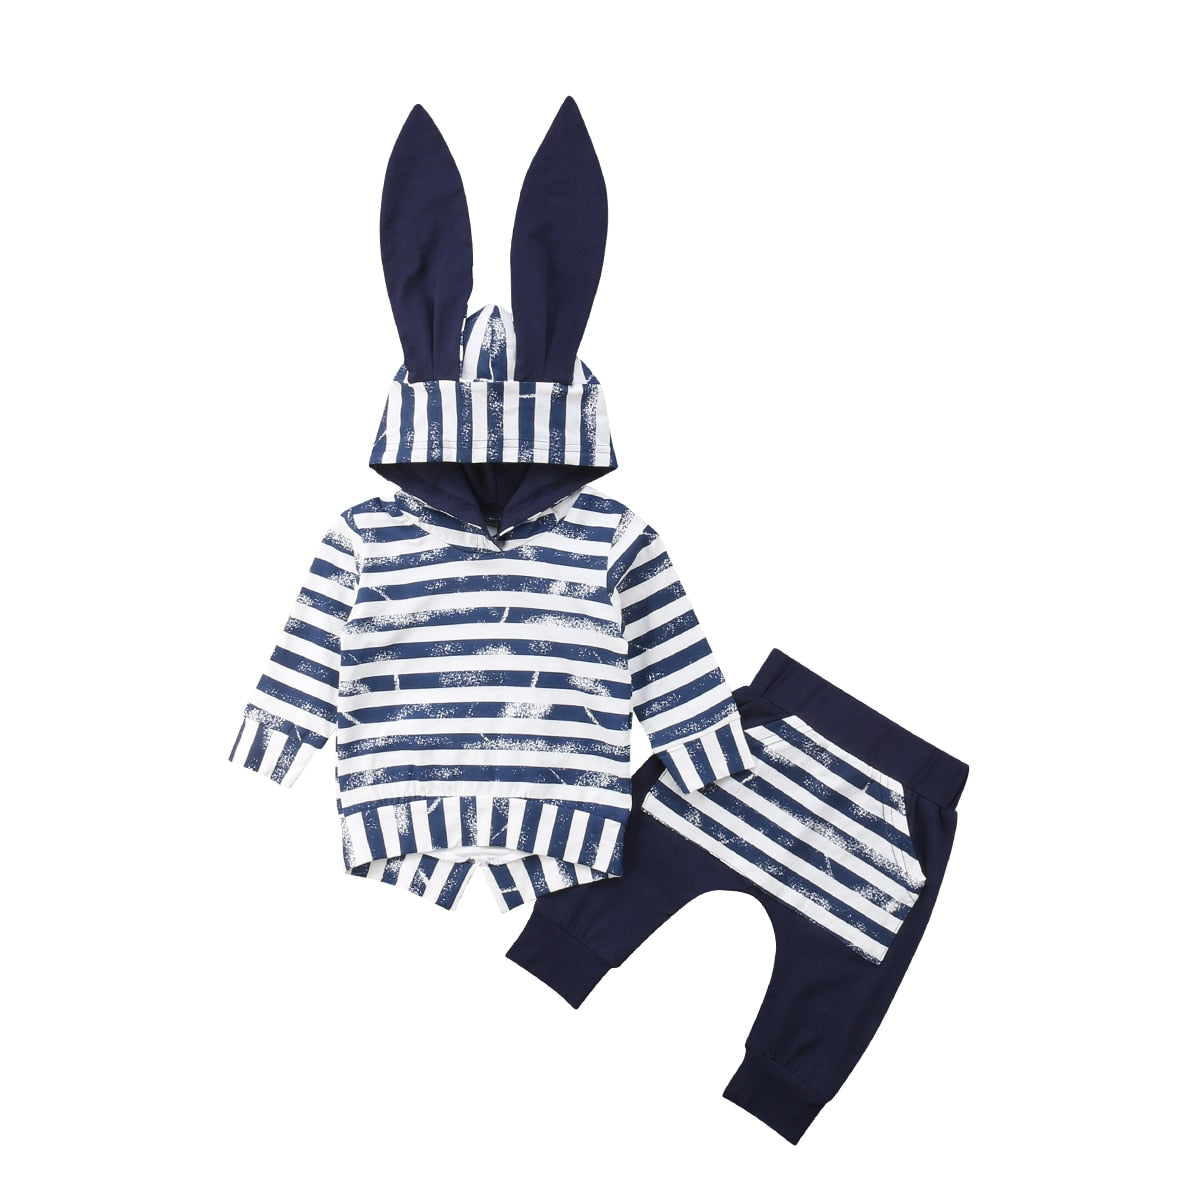 Kids Bunny Ears Top Hooded T-shirt + Pant Outfit Set